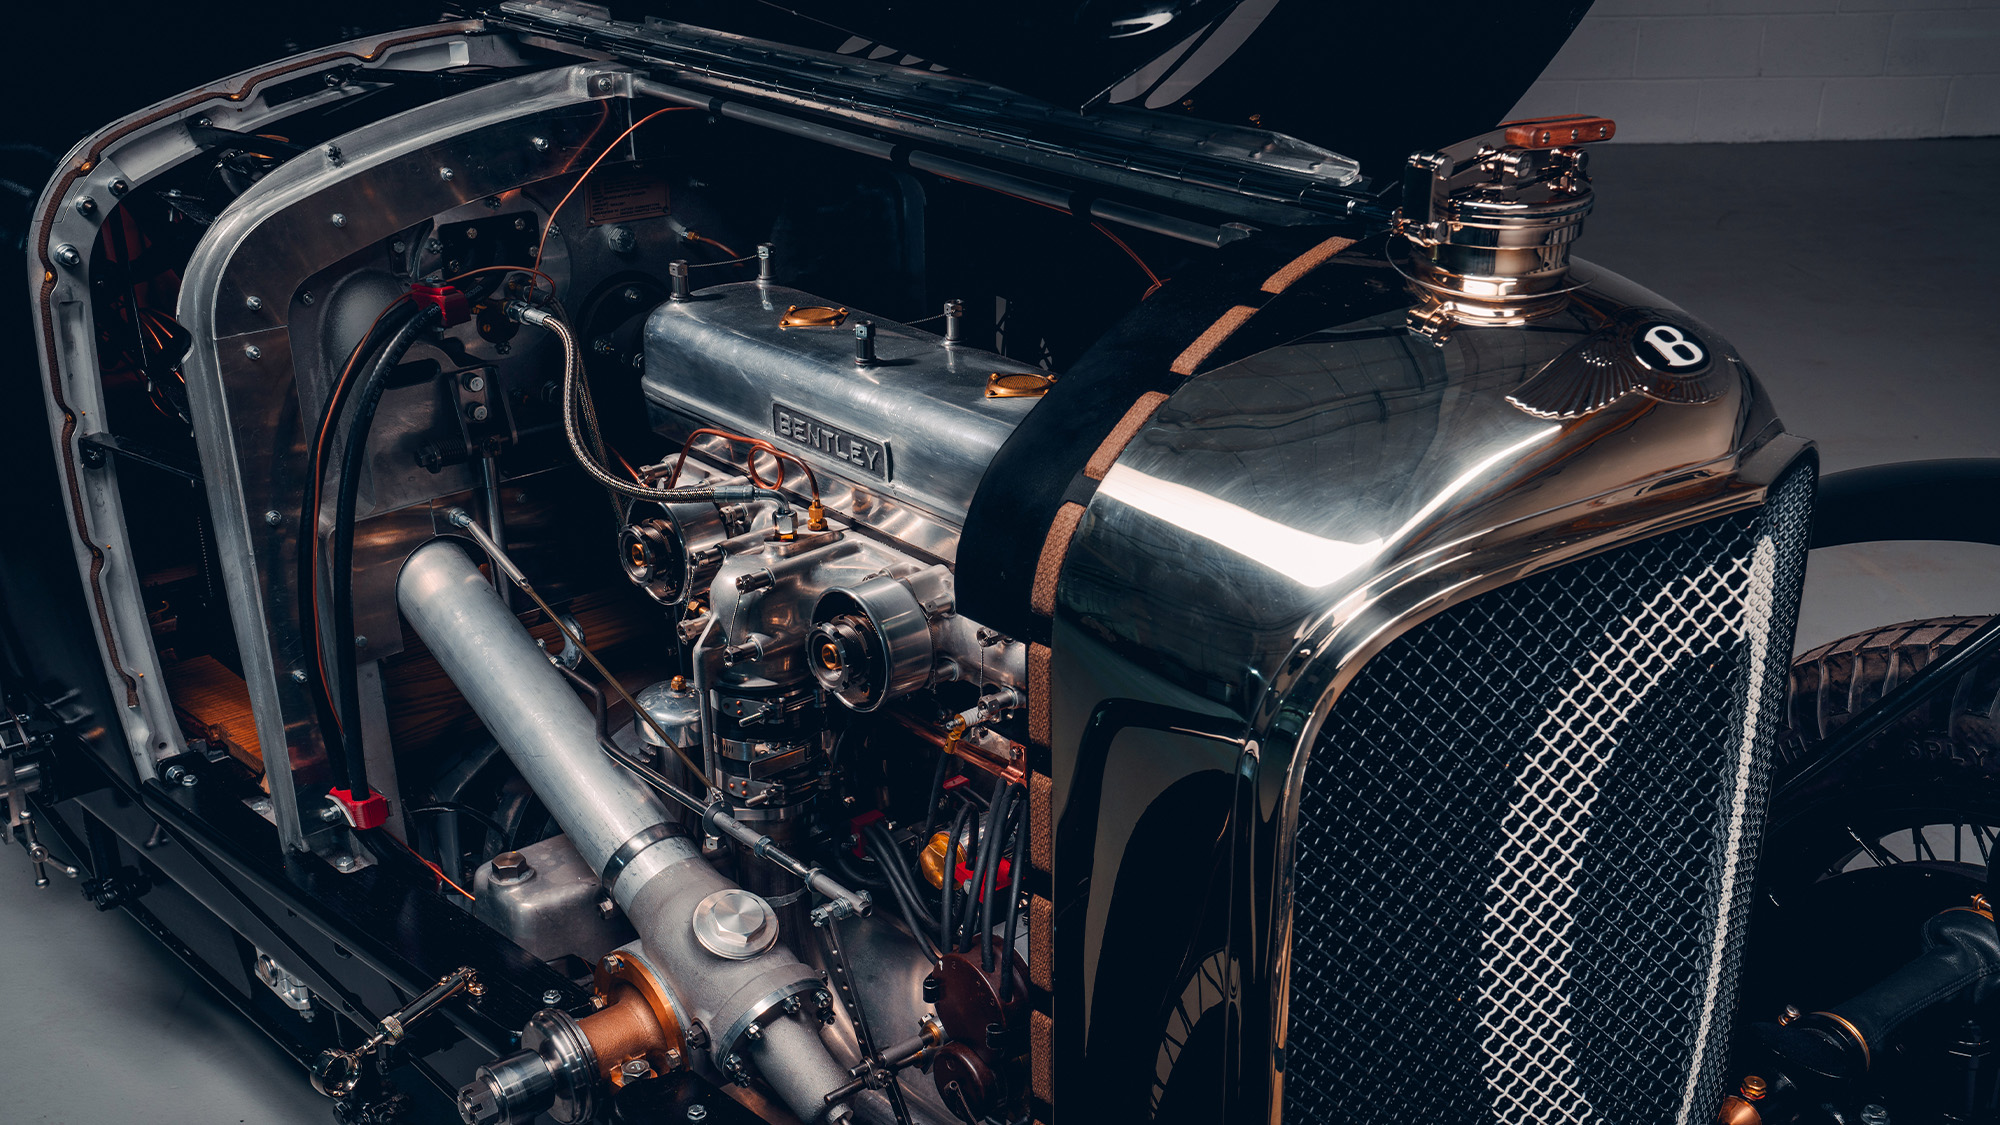 Bentley Blower Continuation engine